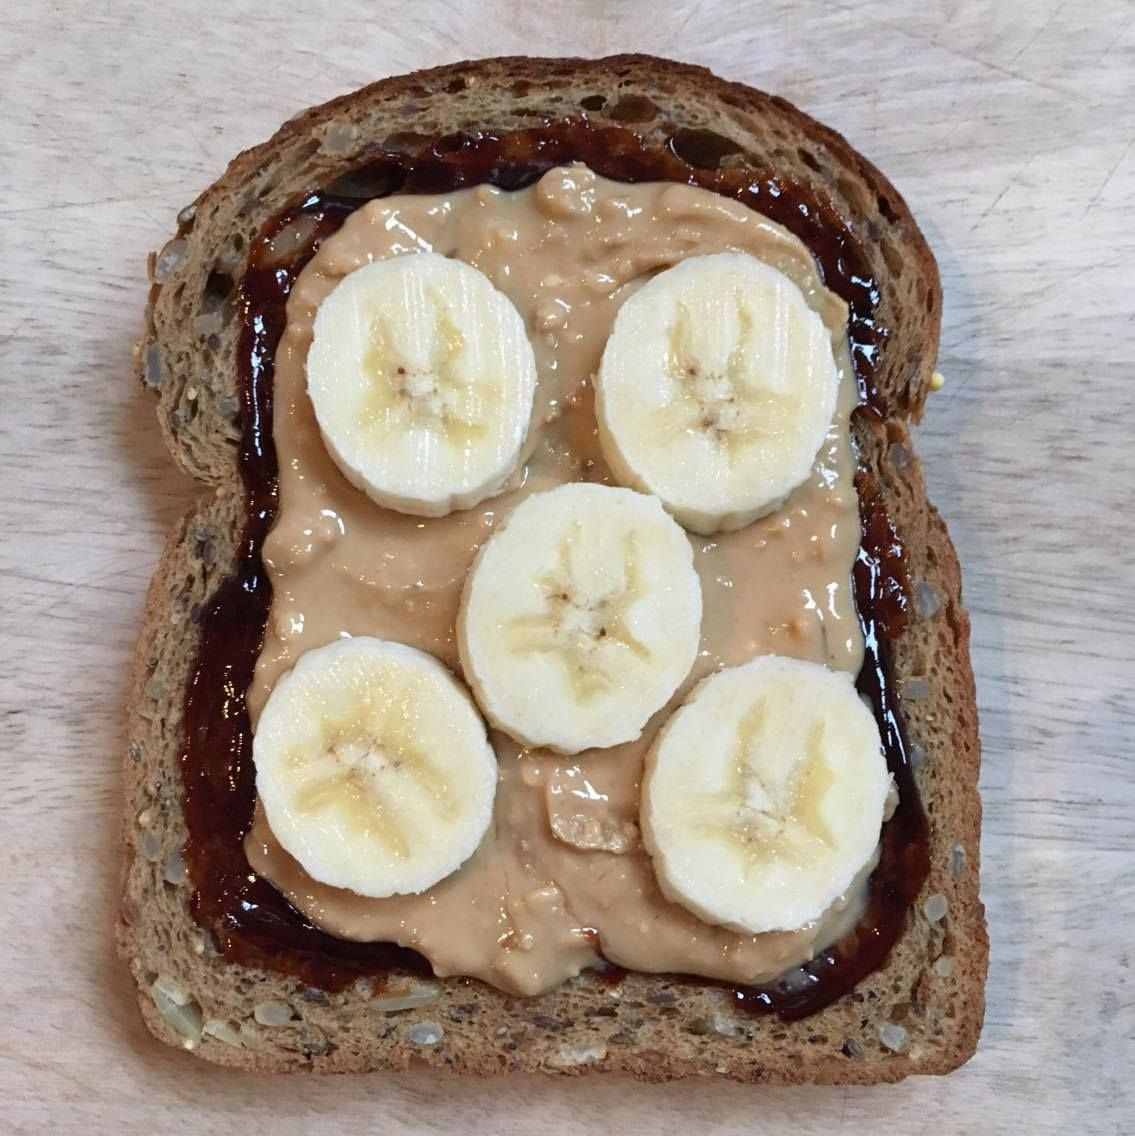 toast, peanut butter and bananas